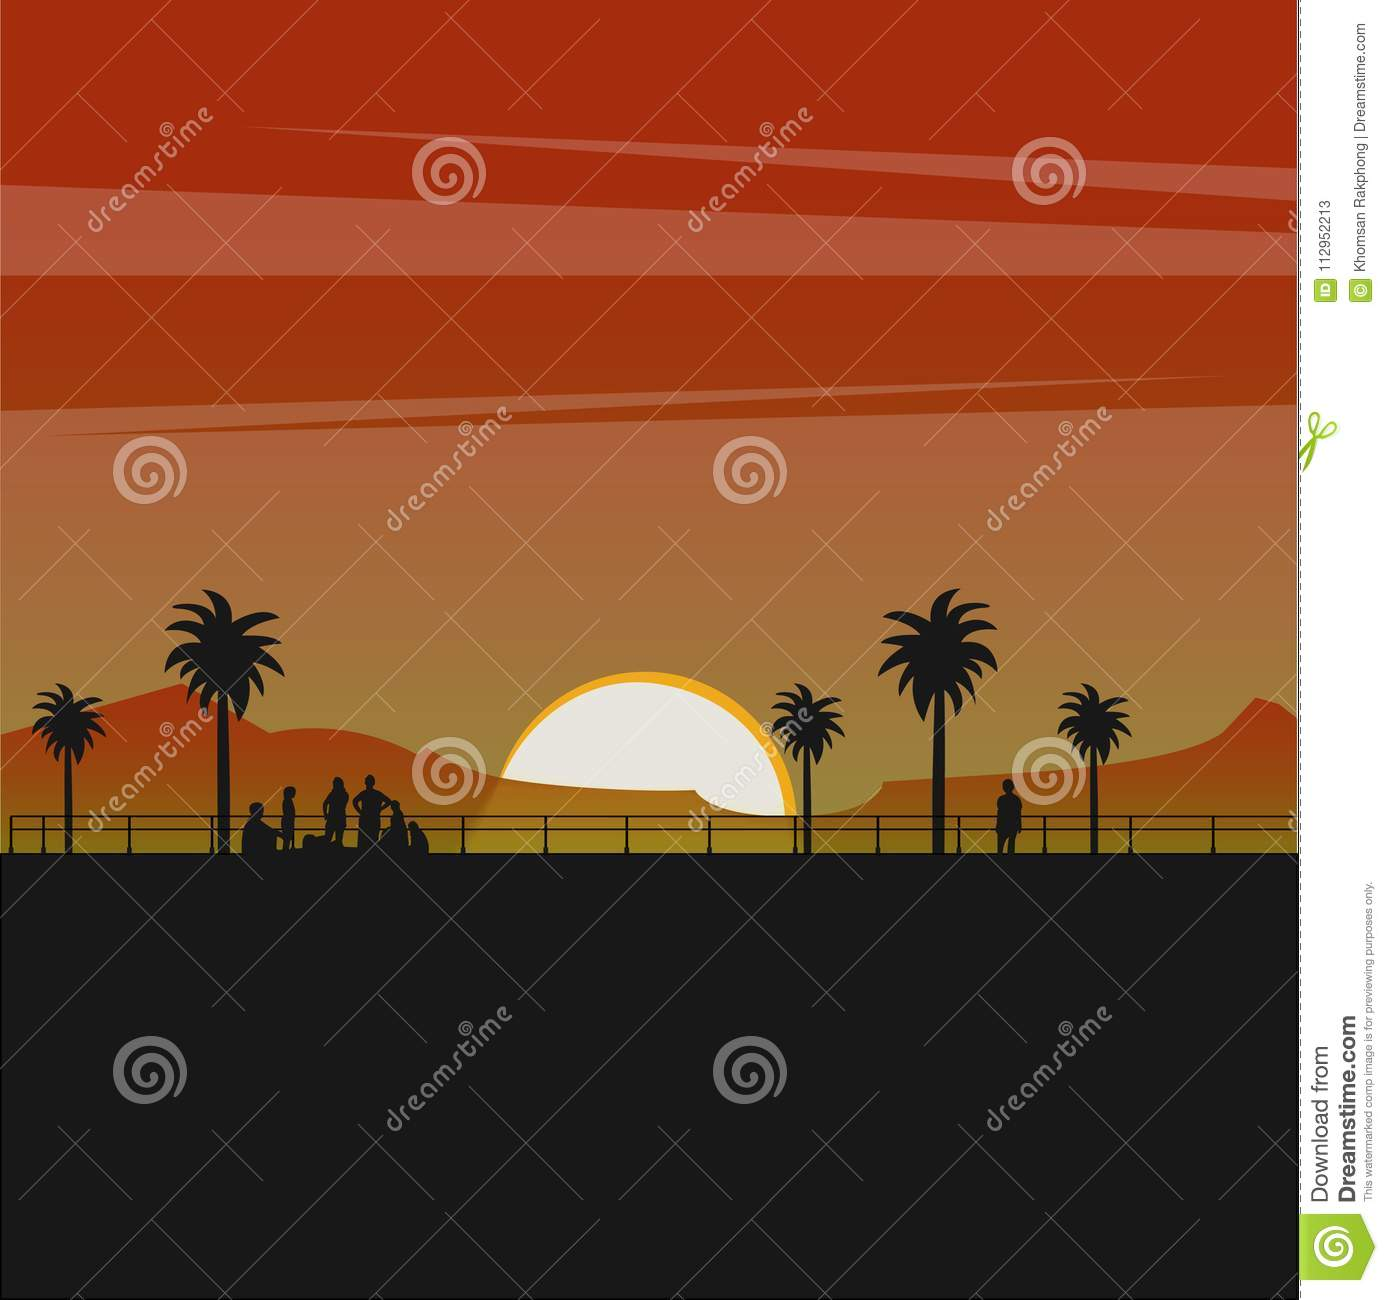 Silhouette of peoele and tree on the beach with a beautiful sunset